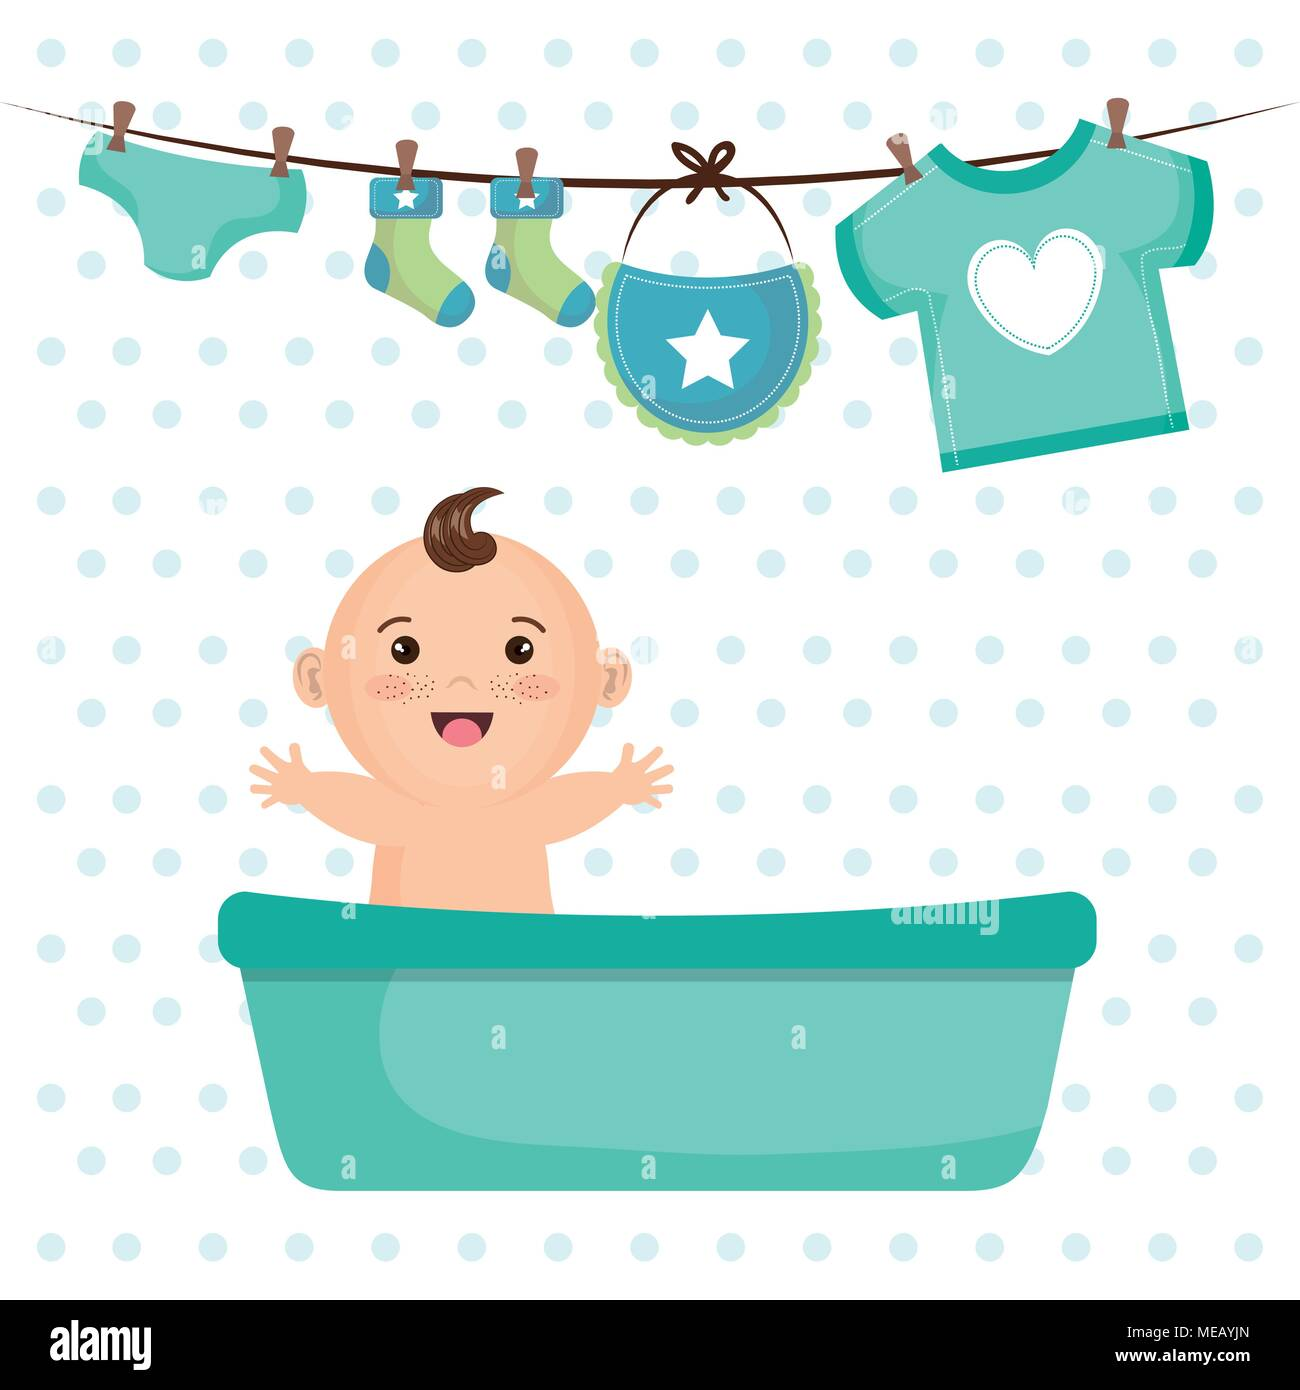 Baby Shower Card With Little Boy Vector Illustration Design Stock